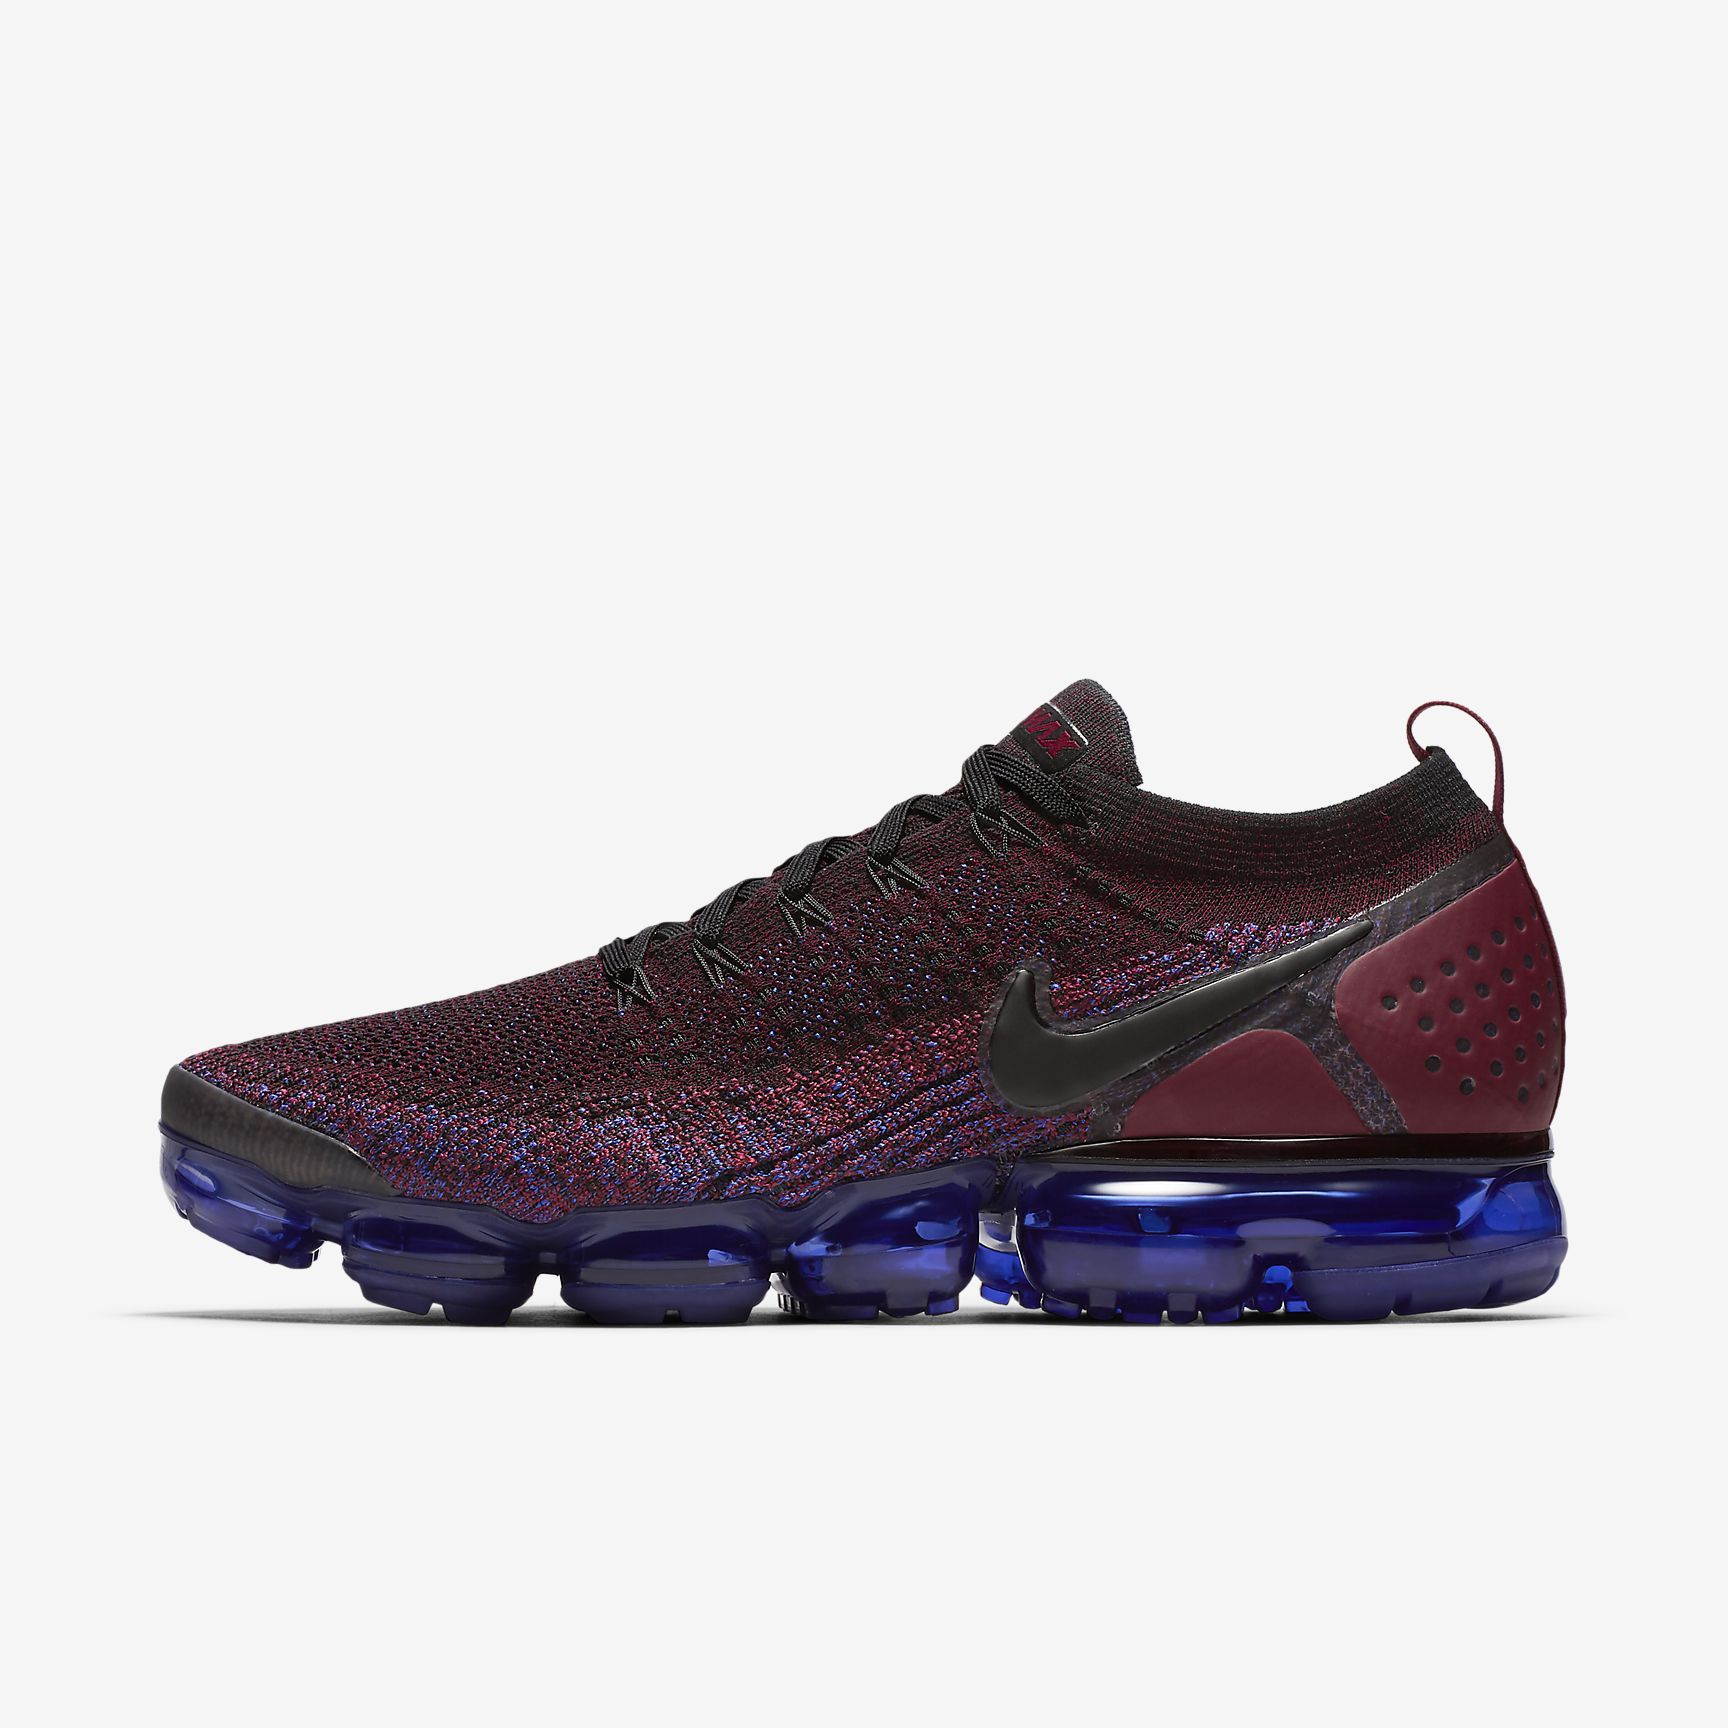 80daed17fb65 Nike Air VaporMax Flyknit 2 Mens Black Team Red Racer Blue Black Sneakers